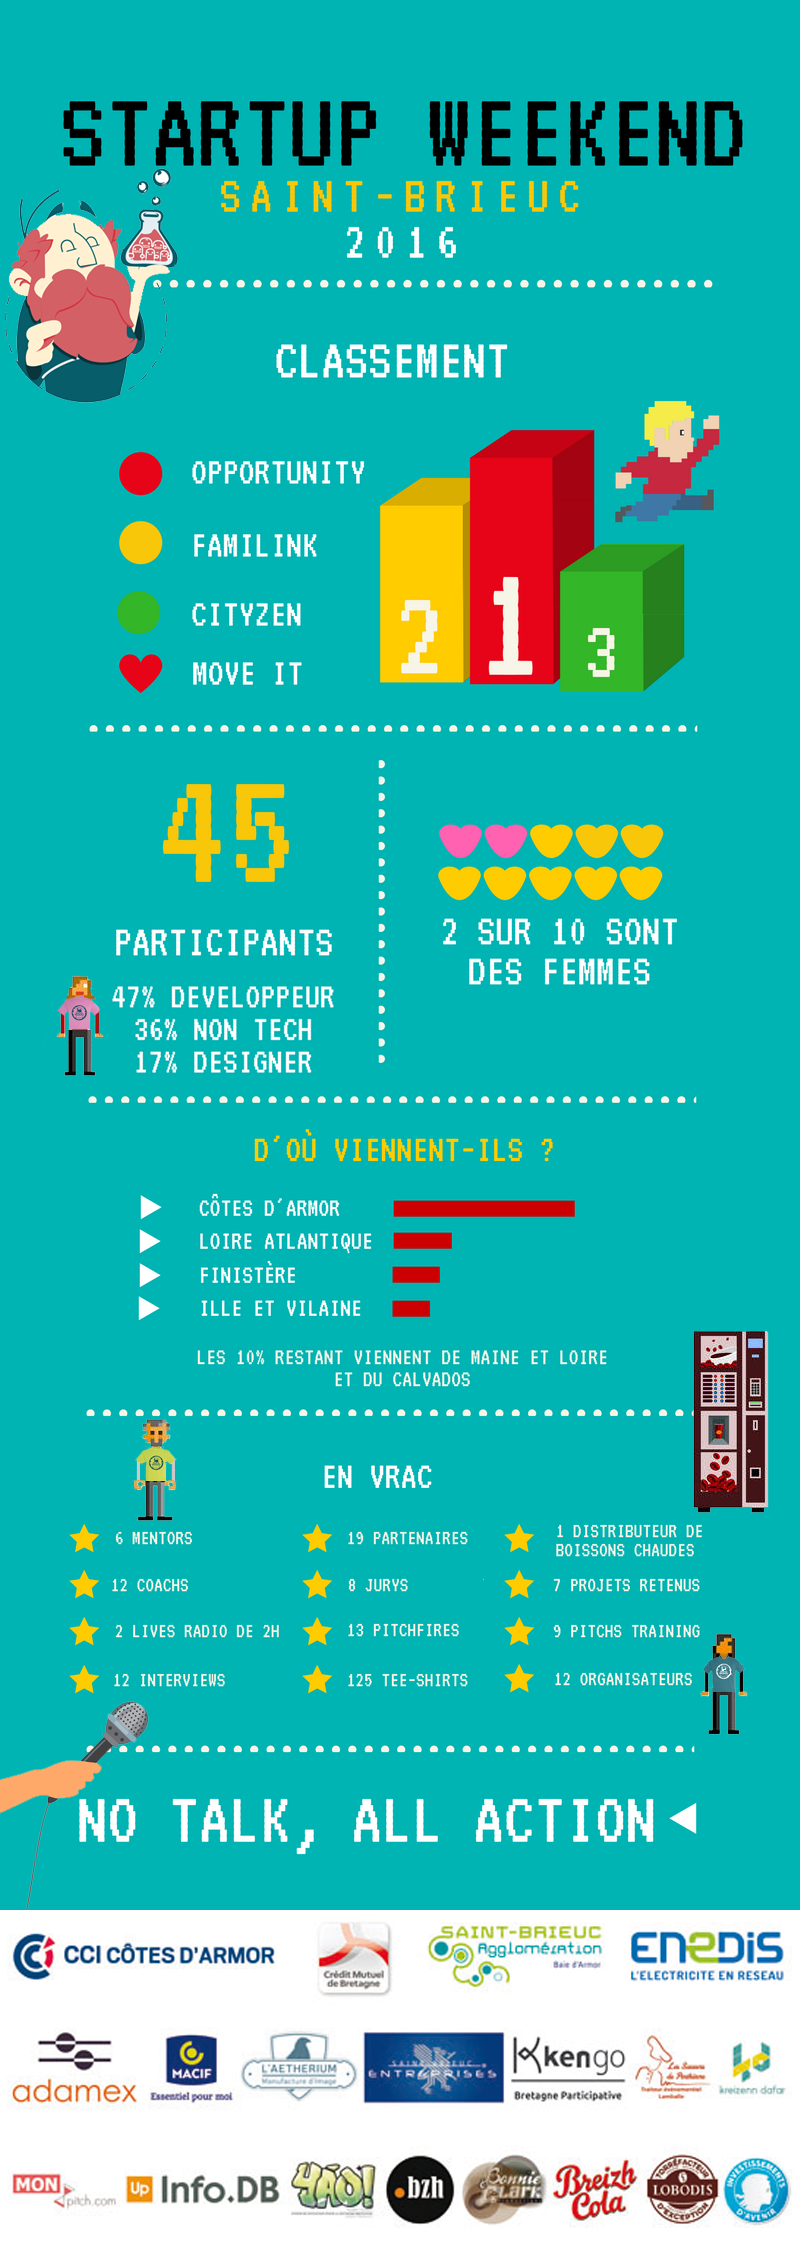 bilan start-up week end saint brieuc